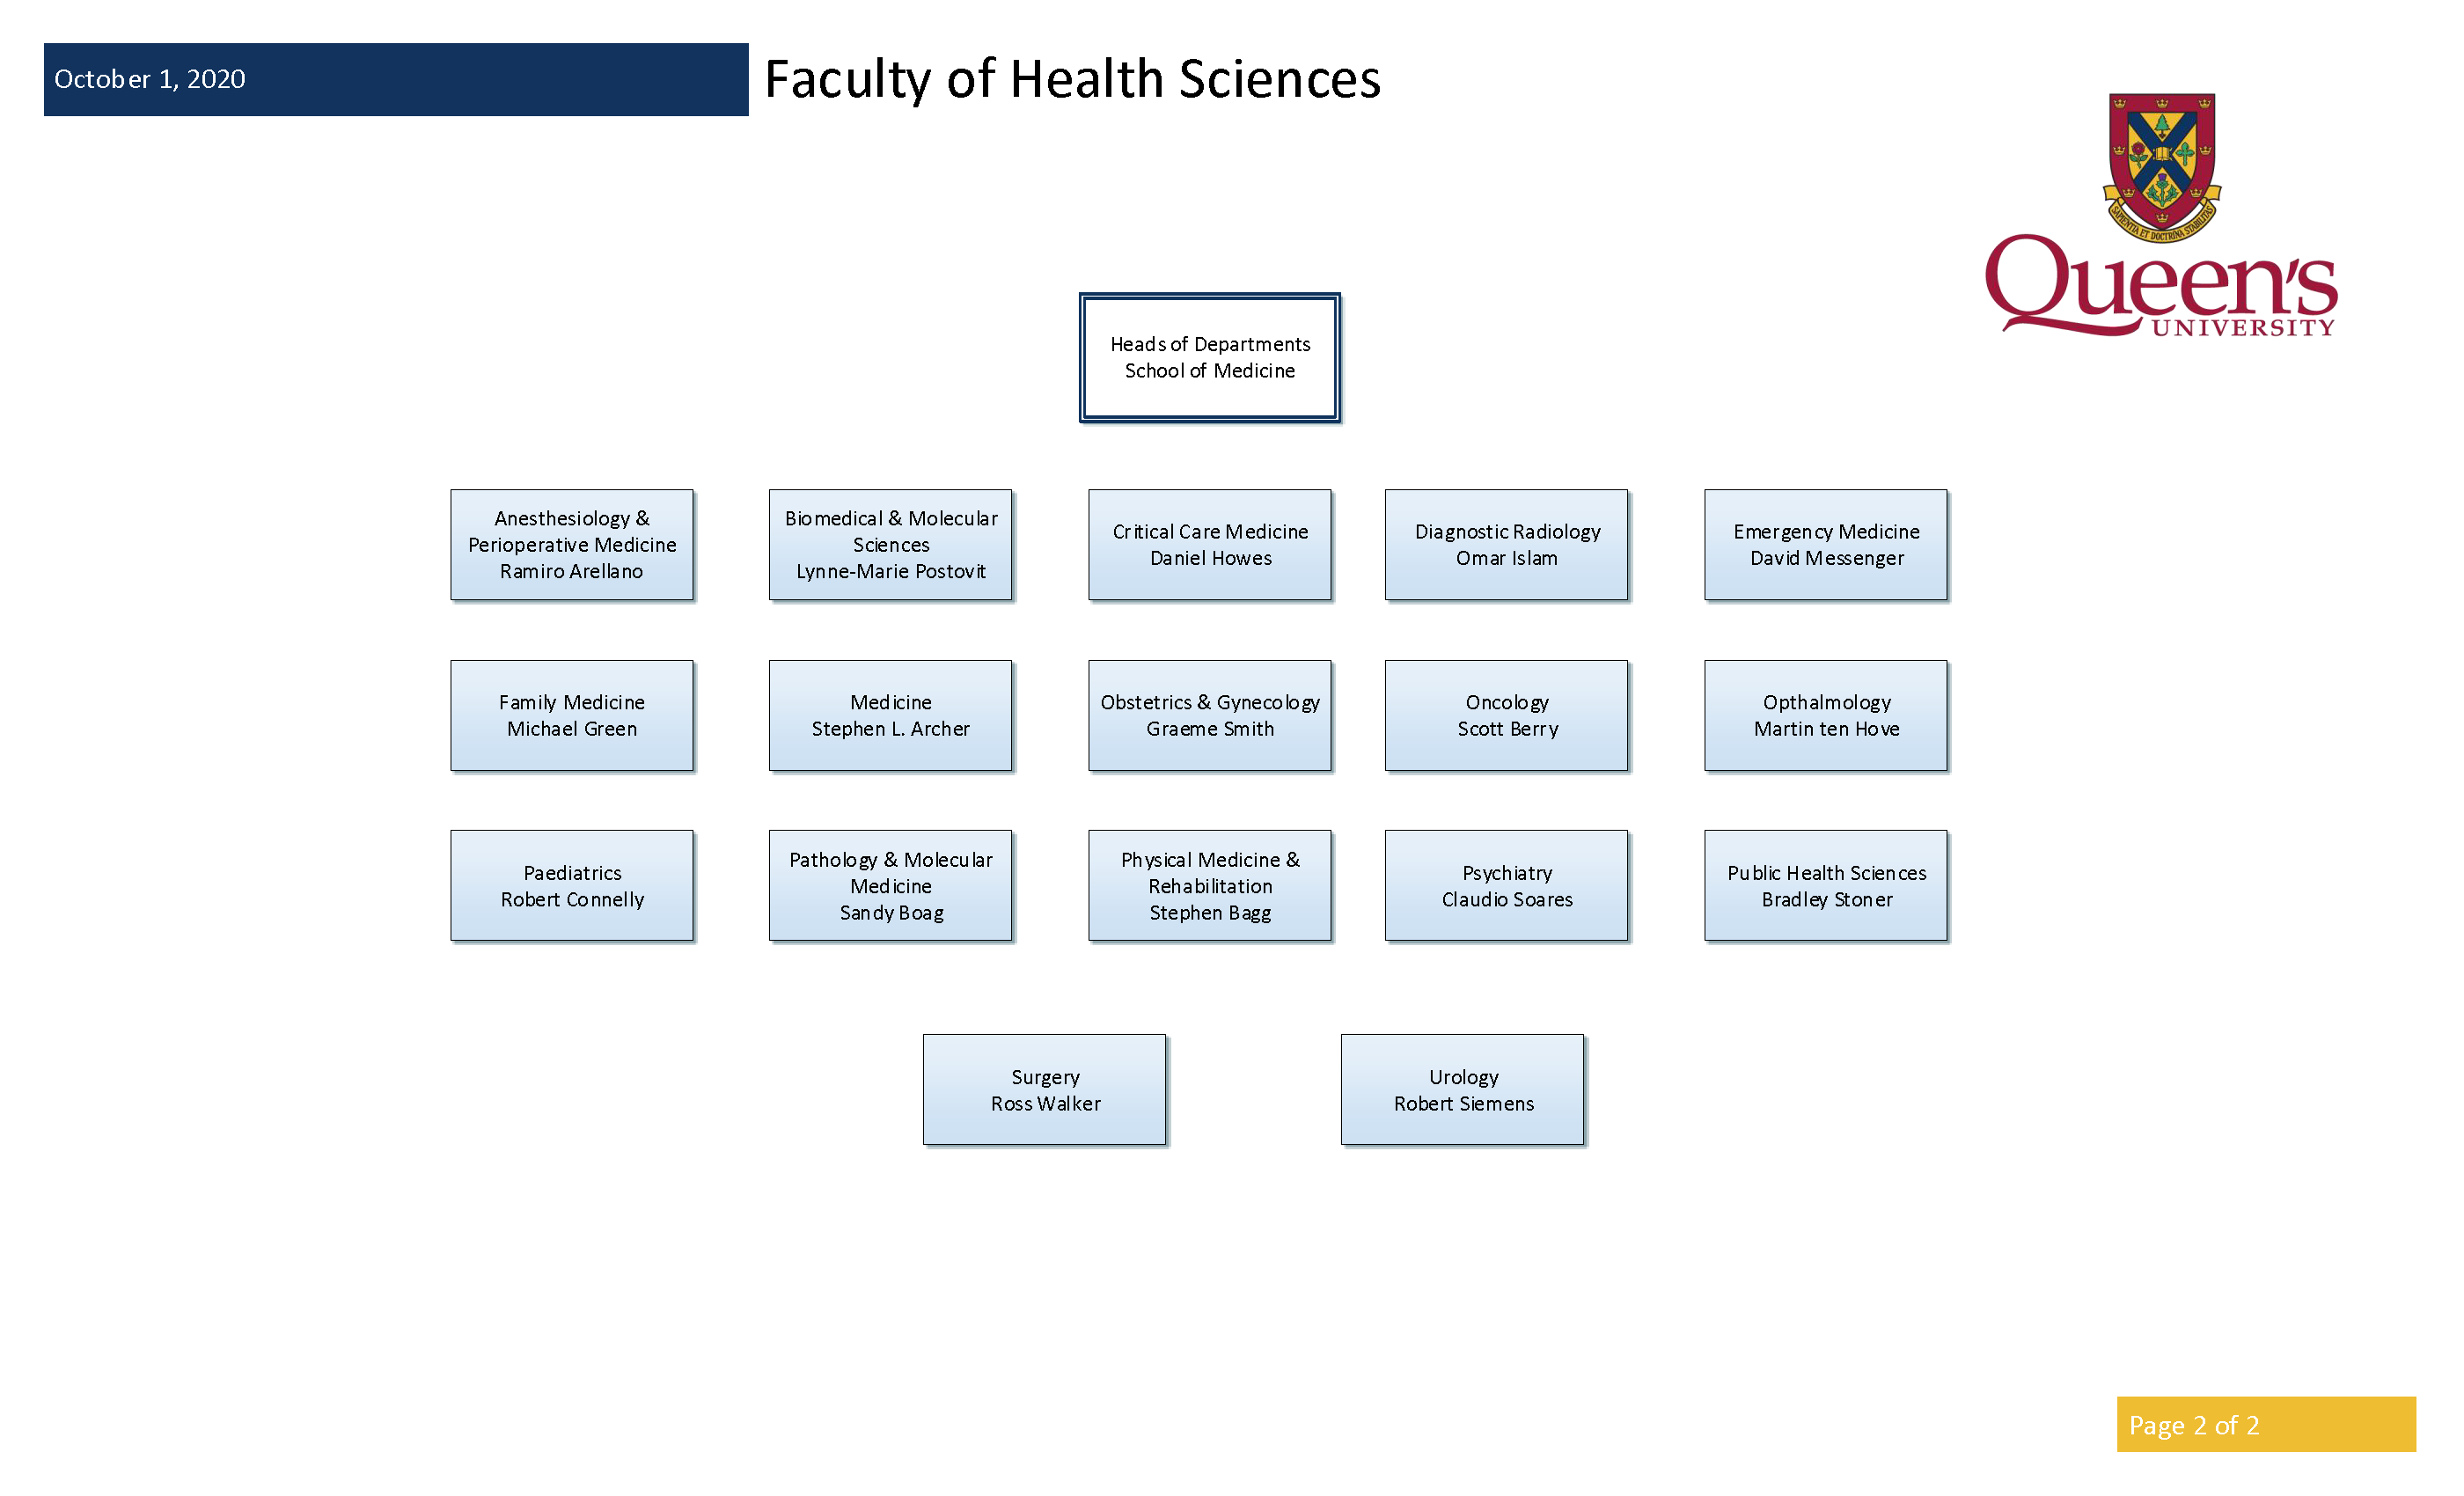 Faculty of Health Sciences - Department Leadership